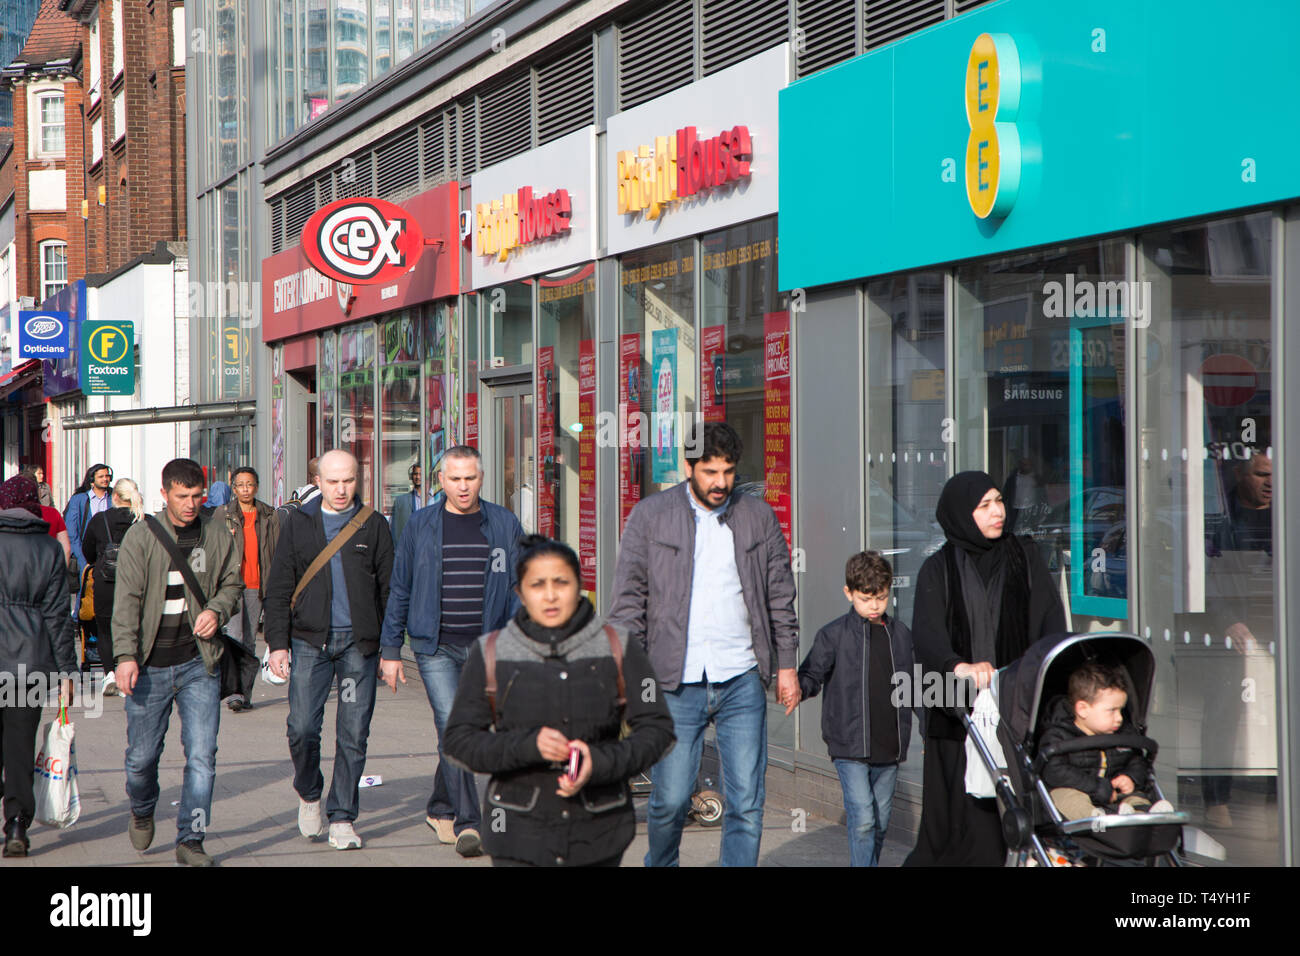 Pedestrians walking along the shops at High Road, Wembley - Stock Image